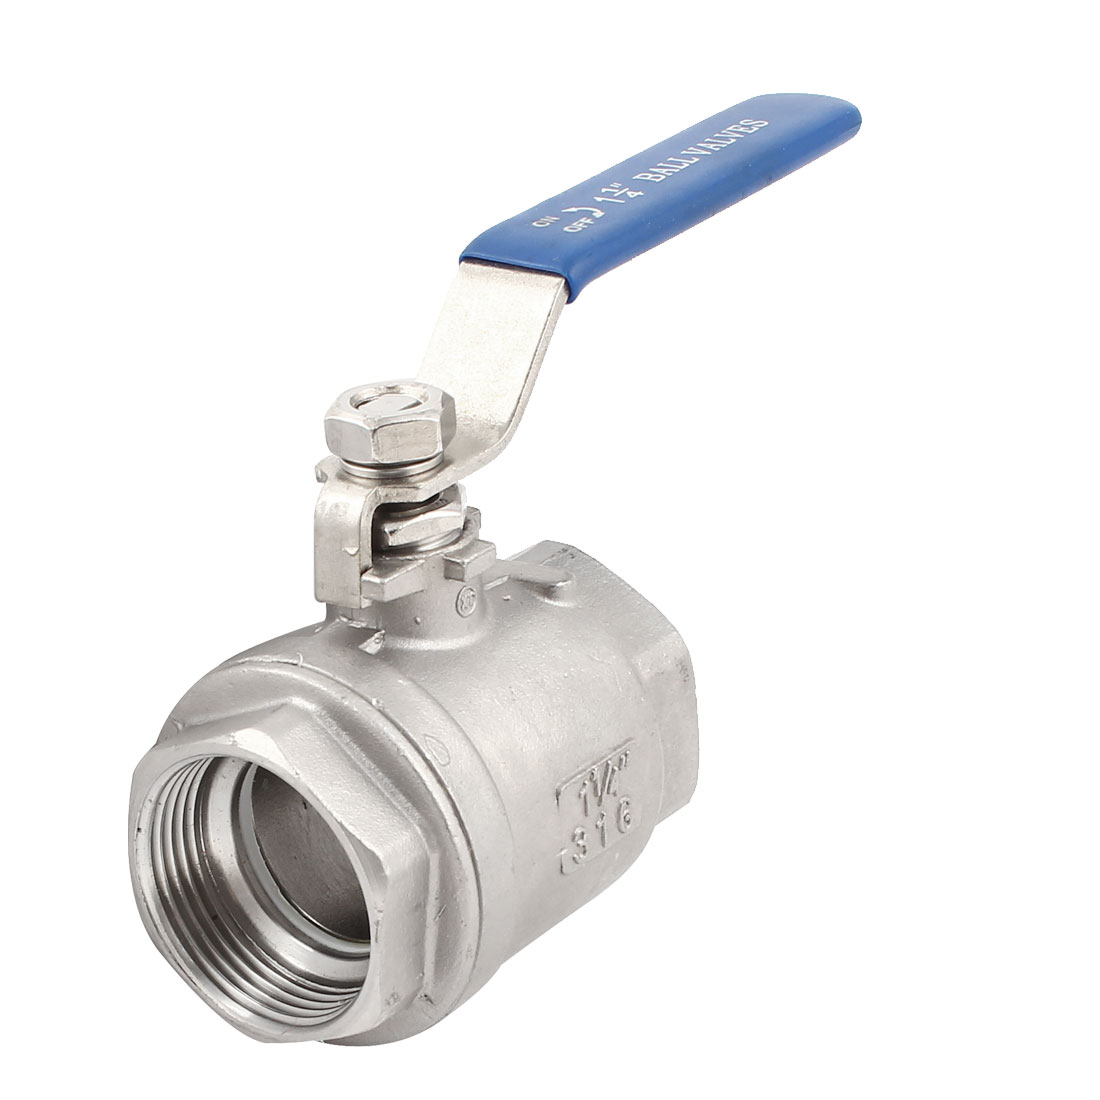 1 1/4PT Female Thread Full Port 90 Degree Rotary Lever Stainless Steel Two Piece Ball Valve